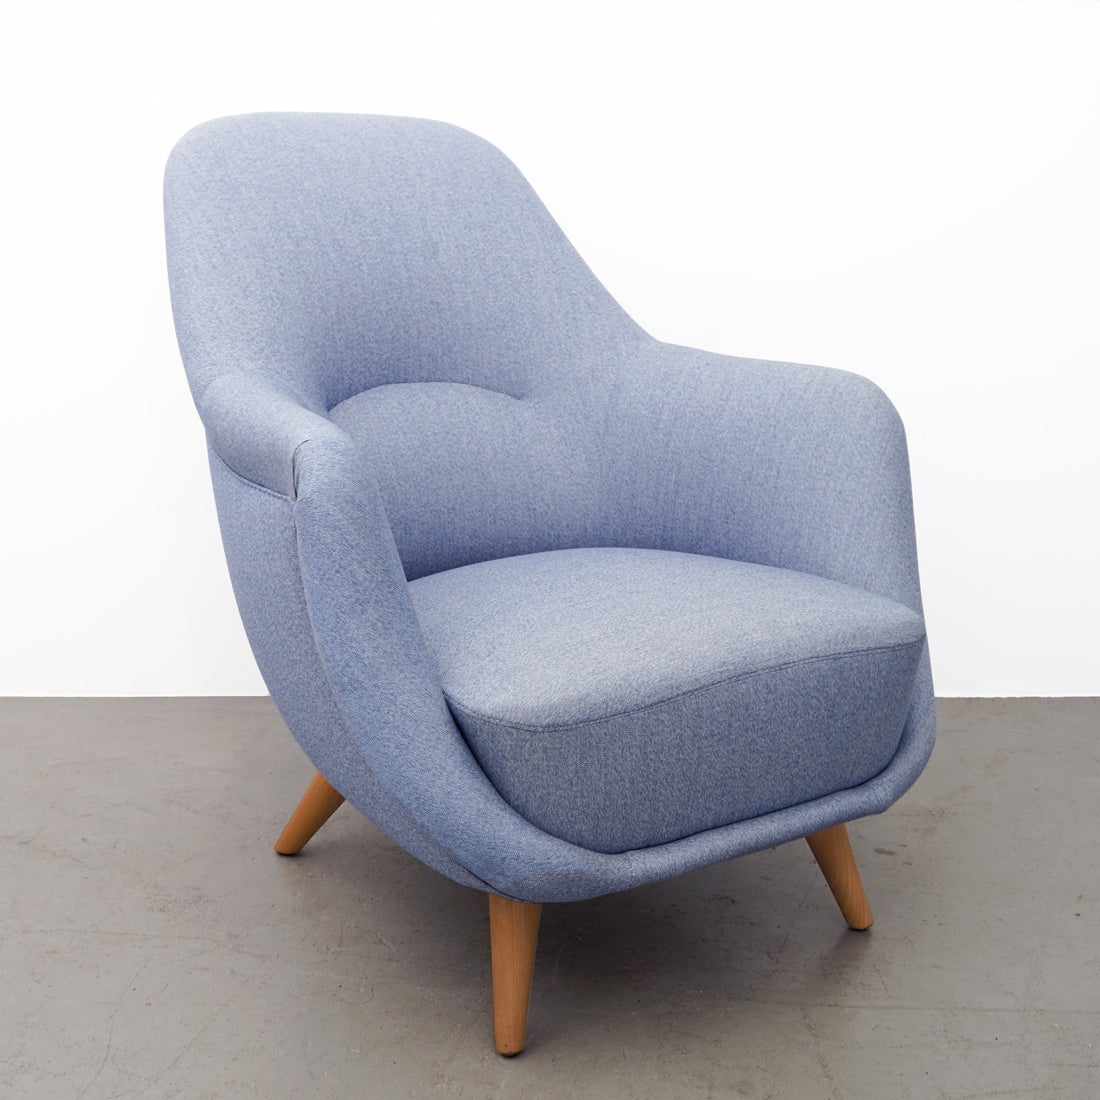 Karton Sessel Lounge Chair In Neutral Fabric Of The 1950s